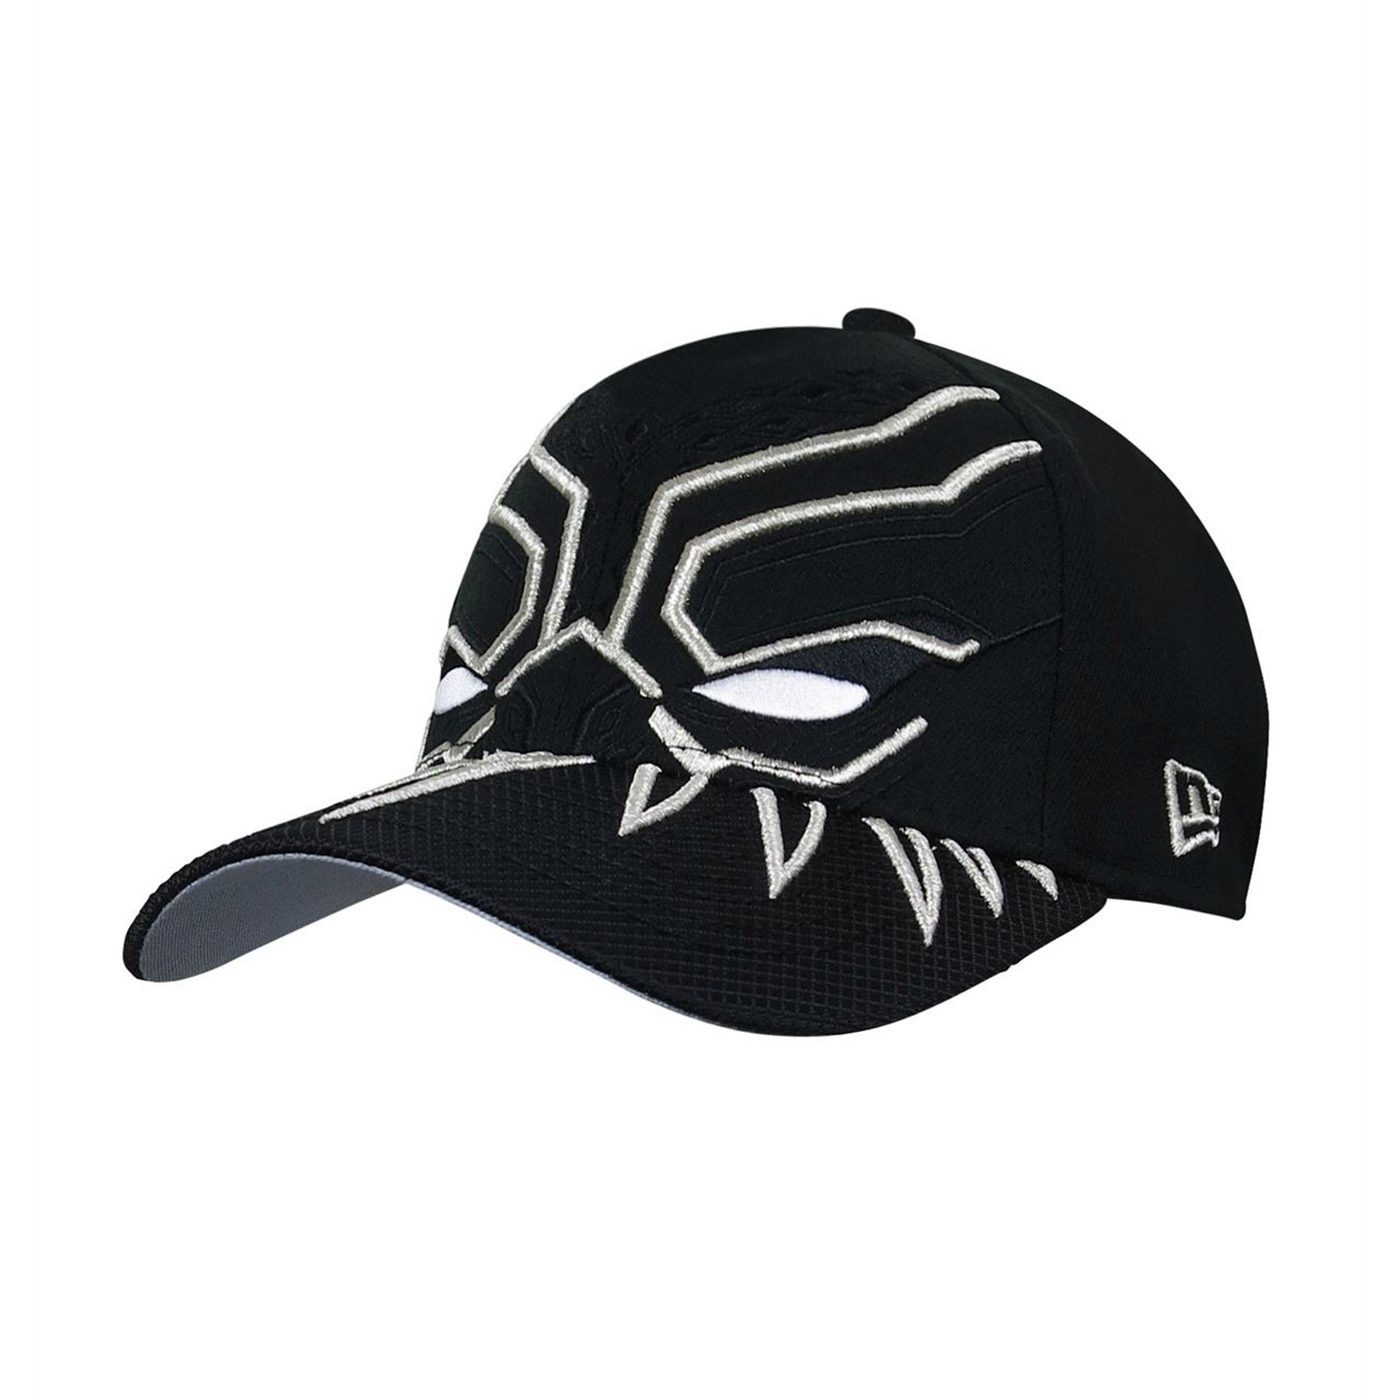 279c5ecac Black Panther Armor New Era 39Thirty Hat